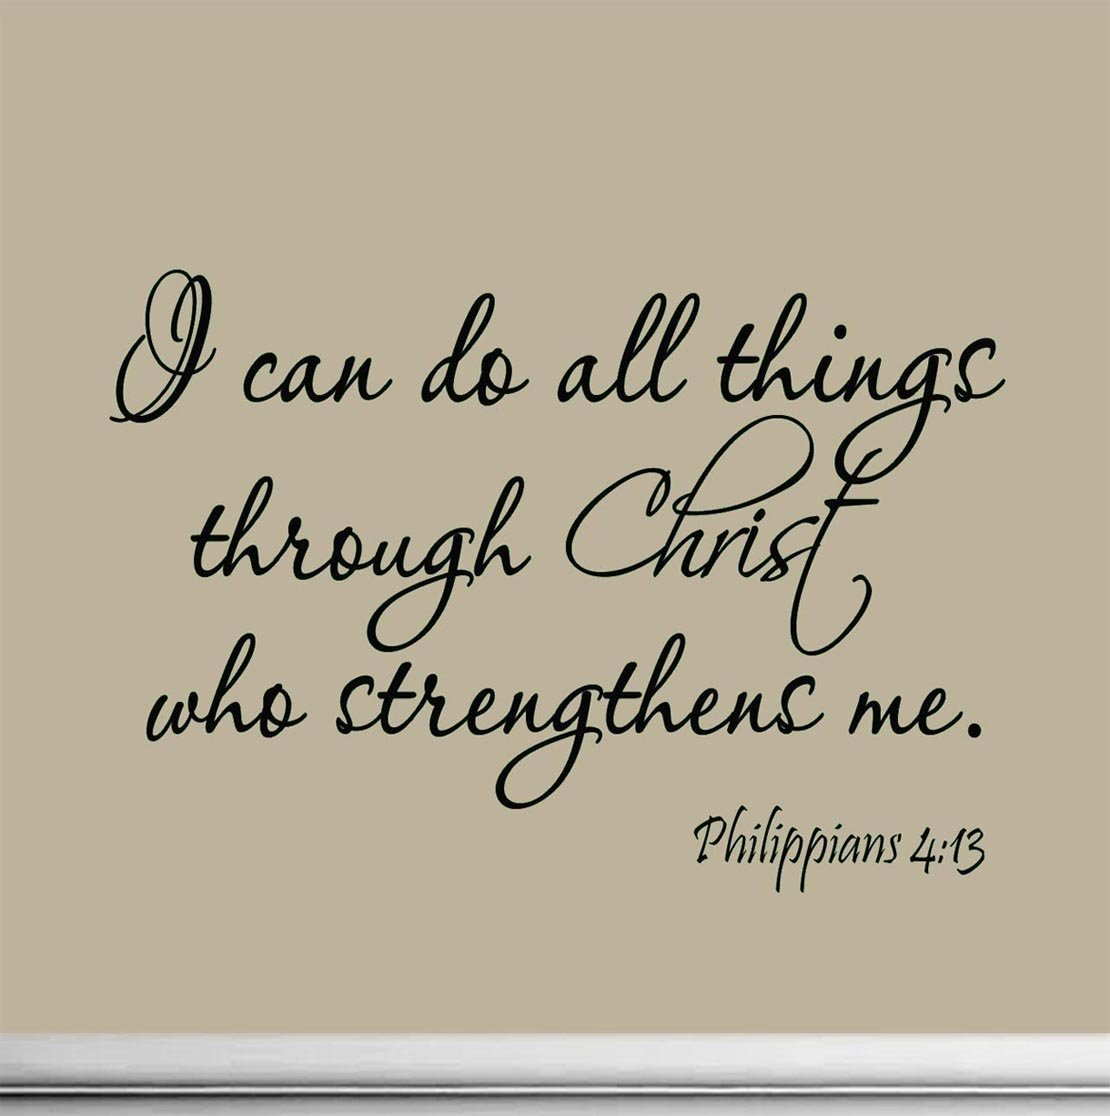 Amazon i can do all things through christ who strengthens me amazon i can do all things through christ who strengthens me philippians 413 wall decal bible scripture christian wall art quote lettering mural home amipublicfo Image collections